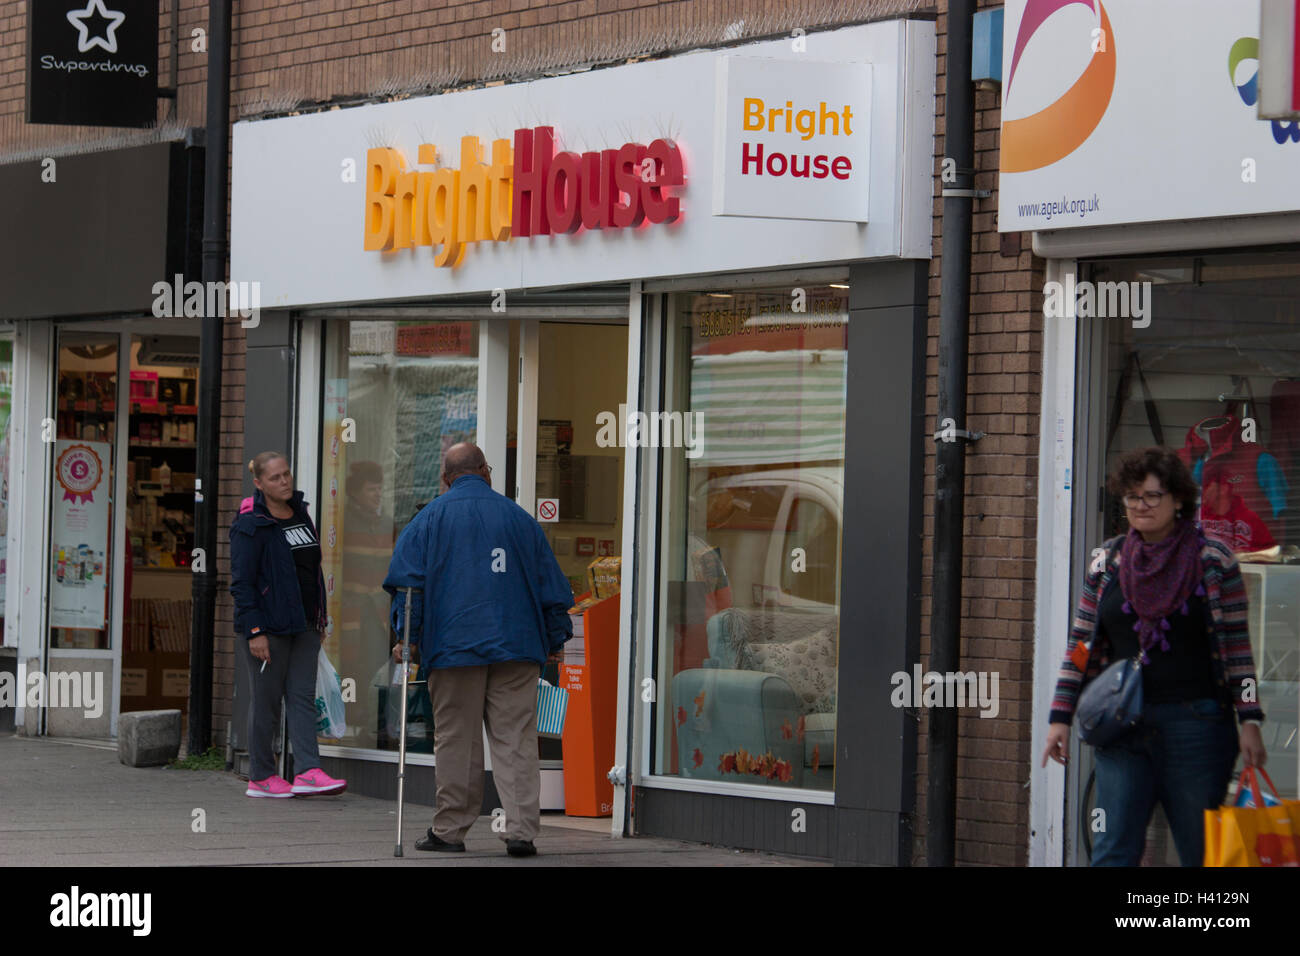 BrightHouse  rent to own retail shop  home electronic and domestic  appliances  and household furniture sales  Walthamstow High Street. BrightHouse  rent to own retail shop  home electronic and domestic